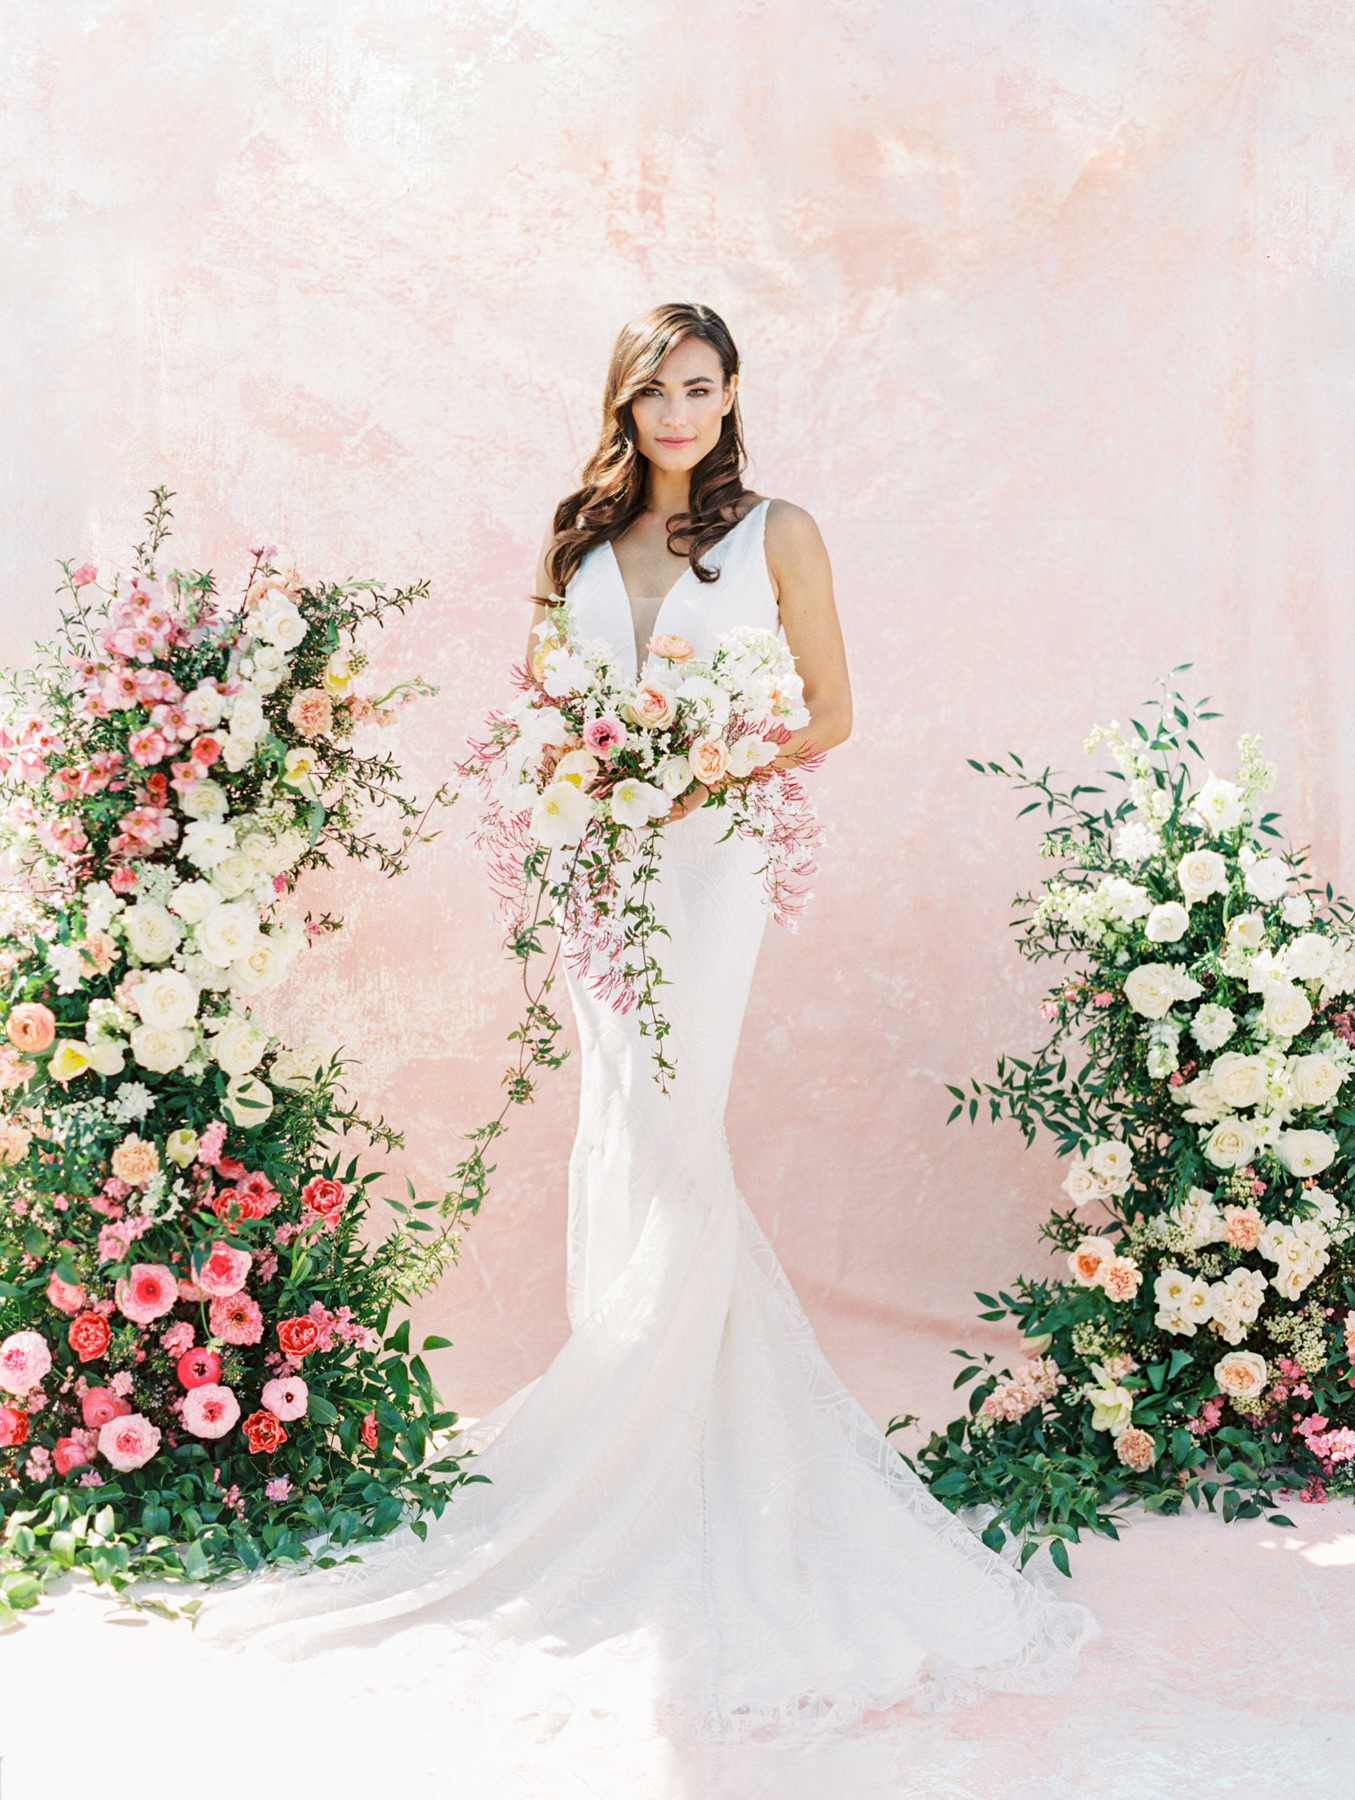 Wild long bridal bouquet and asymmetrical floral arch with pink and ivory roses, sweet peas, ranunculus, carnations, and greenery with a pink painterly backdrop. Kelly Faetanini Ariana (fashion-grade Neoprene and lace fit-to-flare wedding dress is destination wedding-approved. With a delicate lace and flattering plunging V neckline silhouette and low back) gown from The White Flower. Hair down and curled with hair vine. Kelly Faetanini Wedding Dresses in San Diego. Cavin Elizabeth Photography.